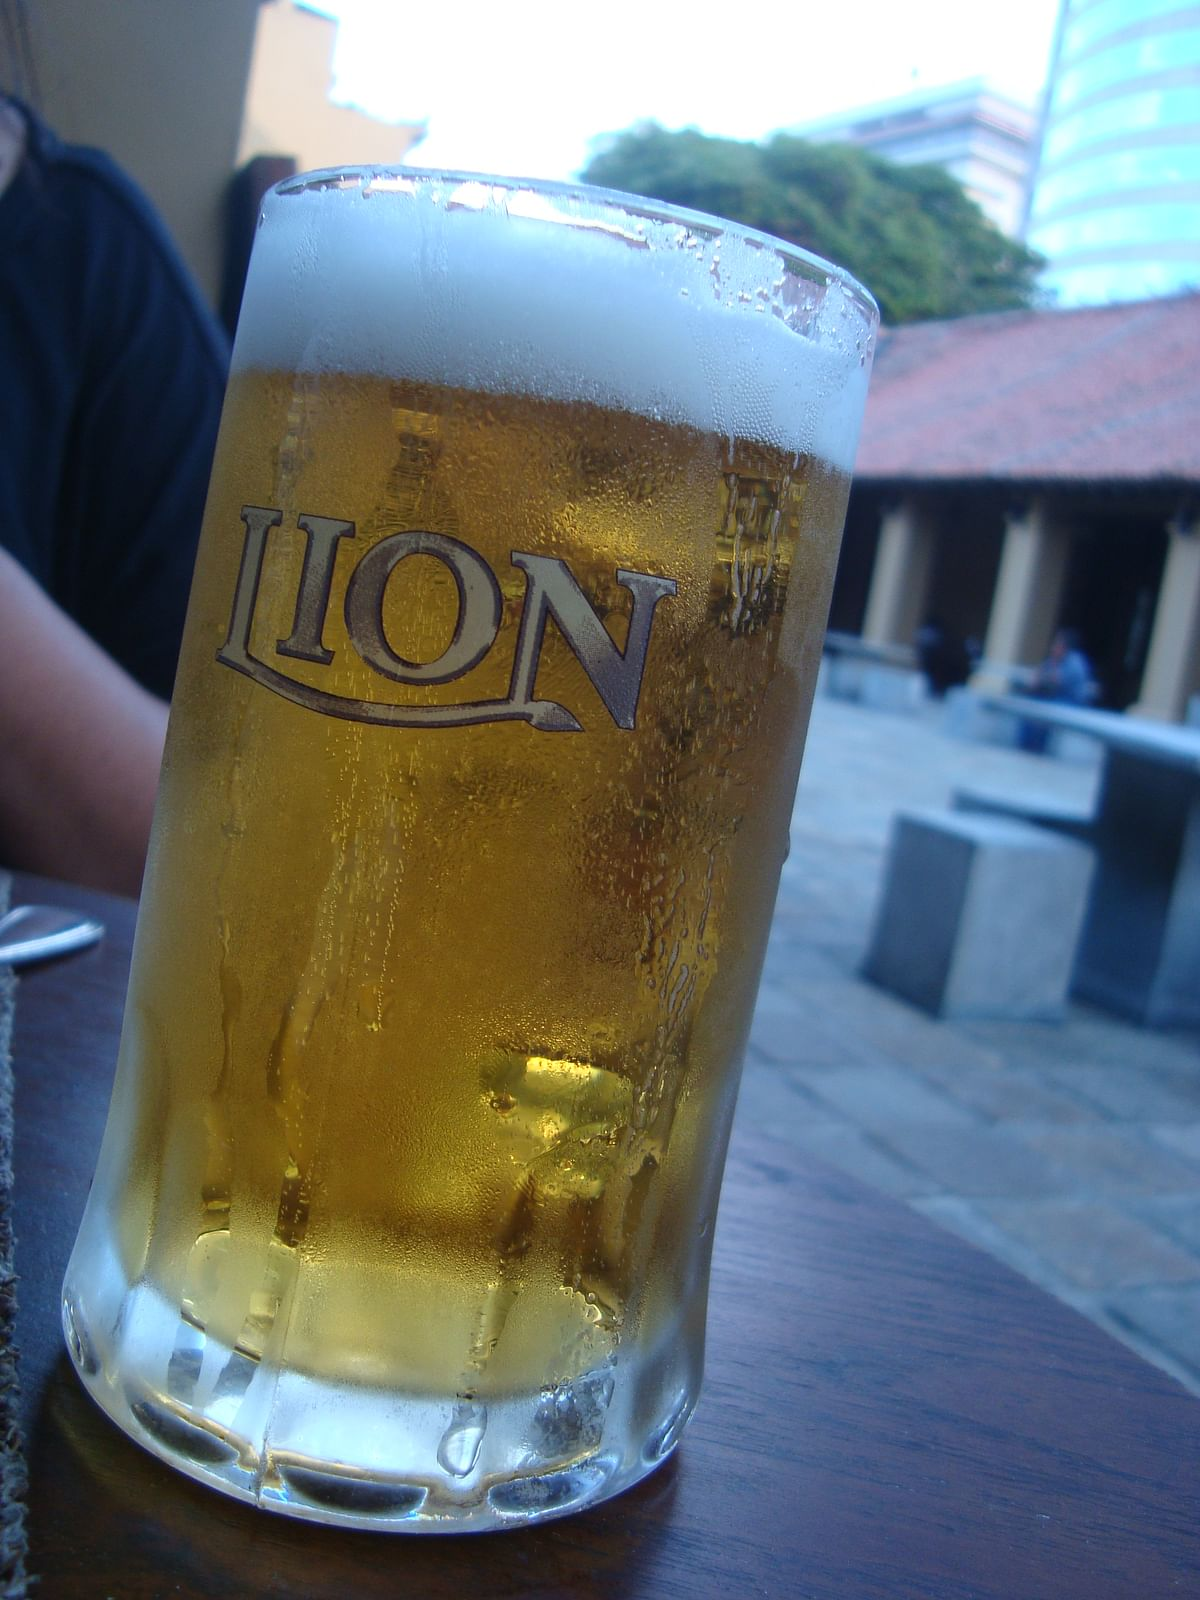 The Lion beer is one of the most popular brews in the country (Photo: Suktara Ghosh)